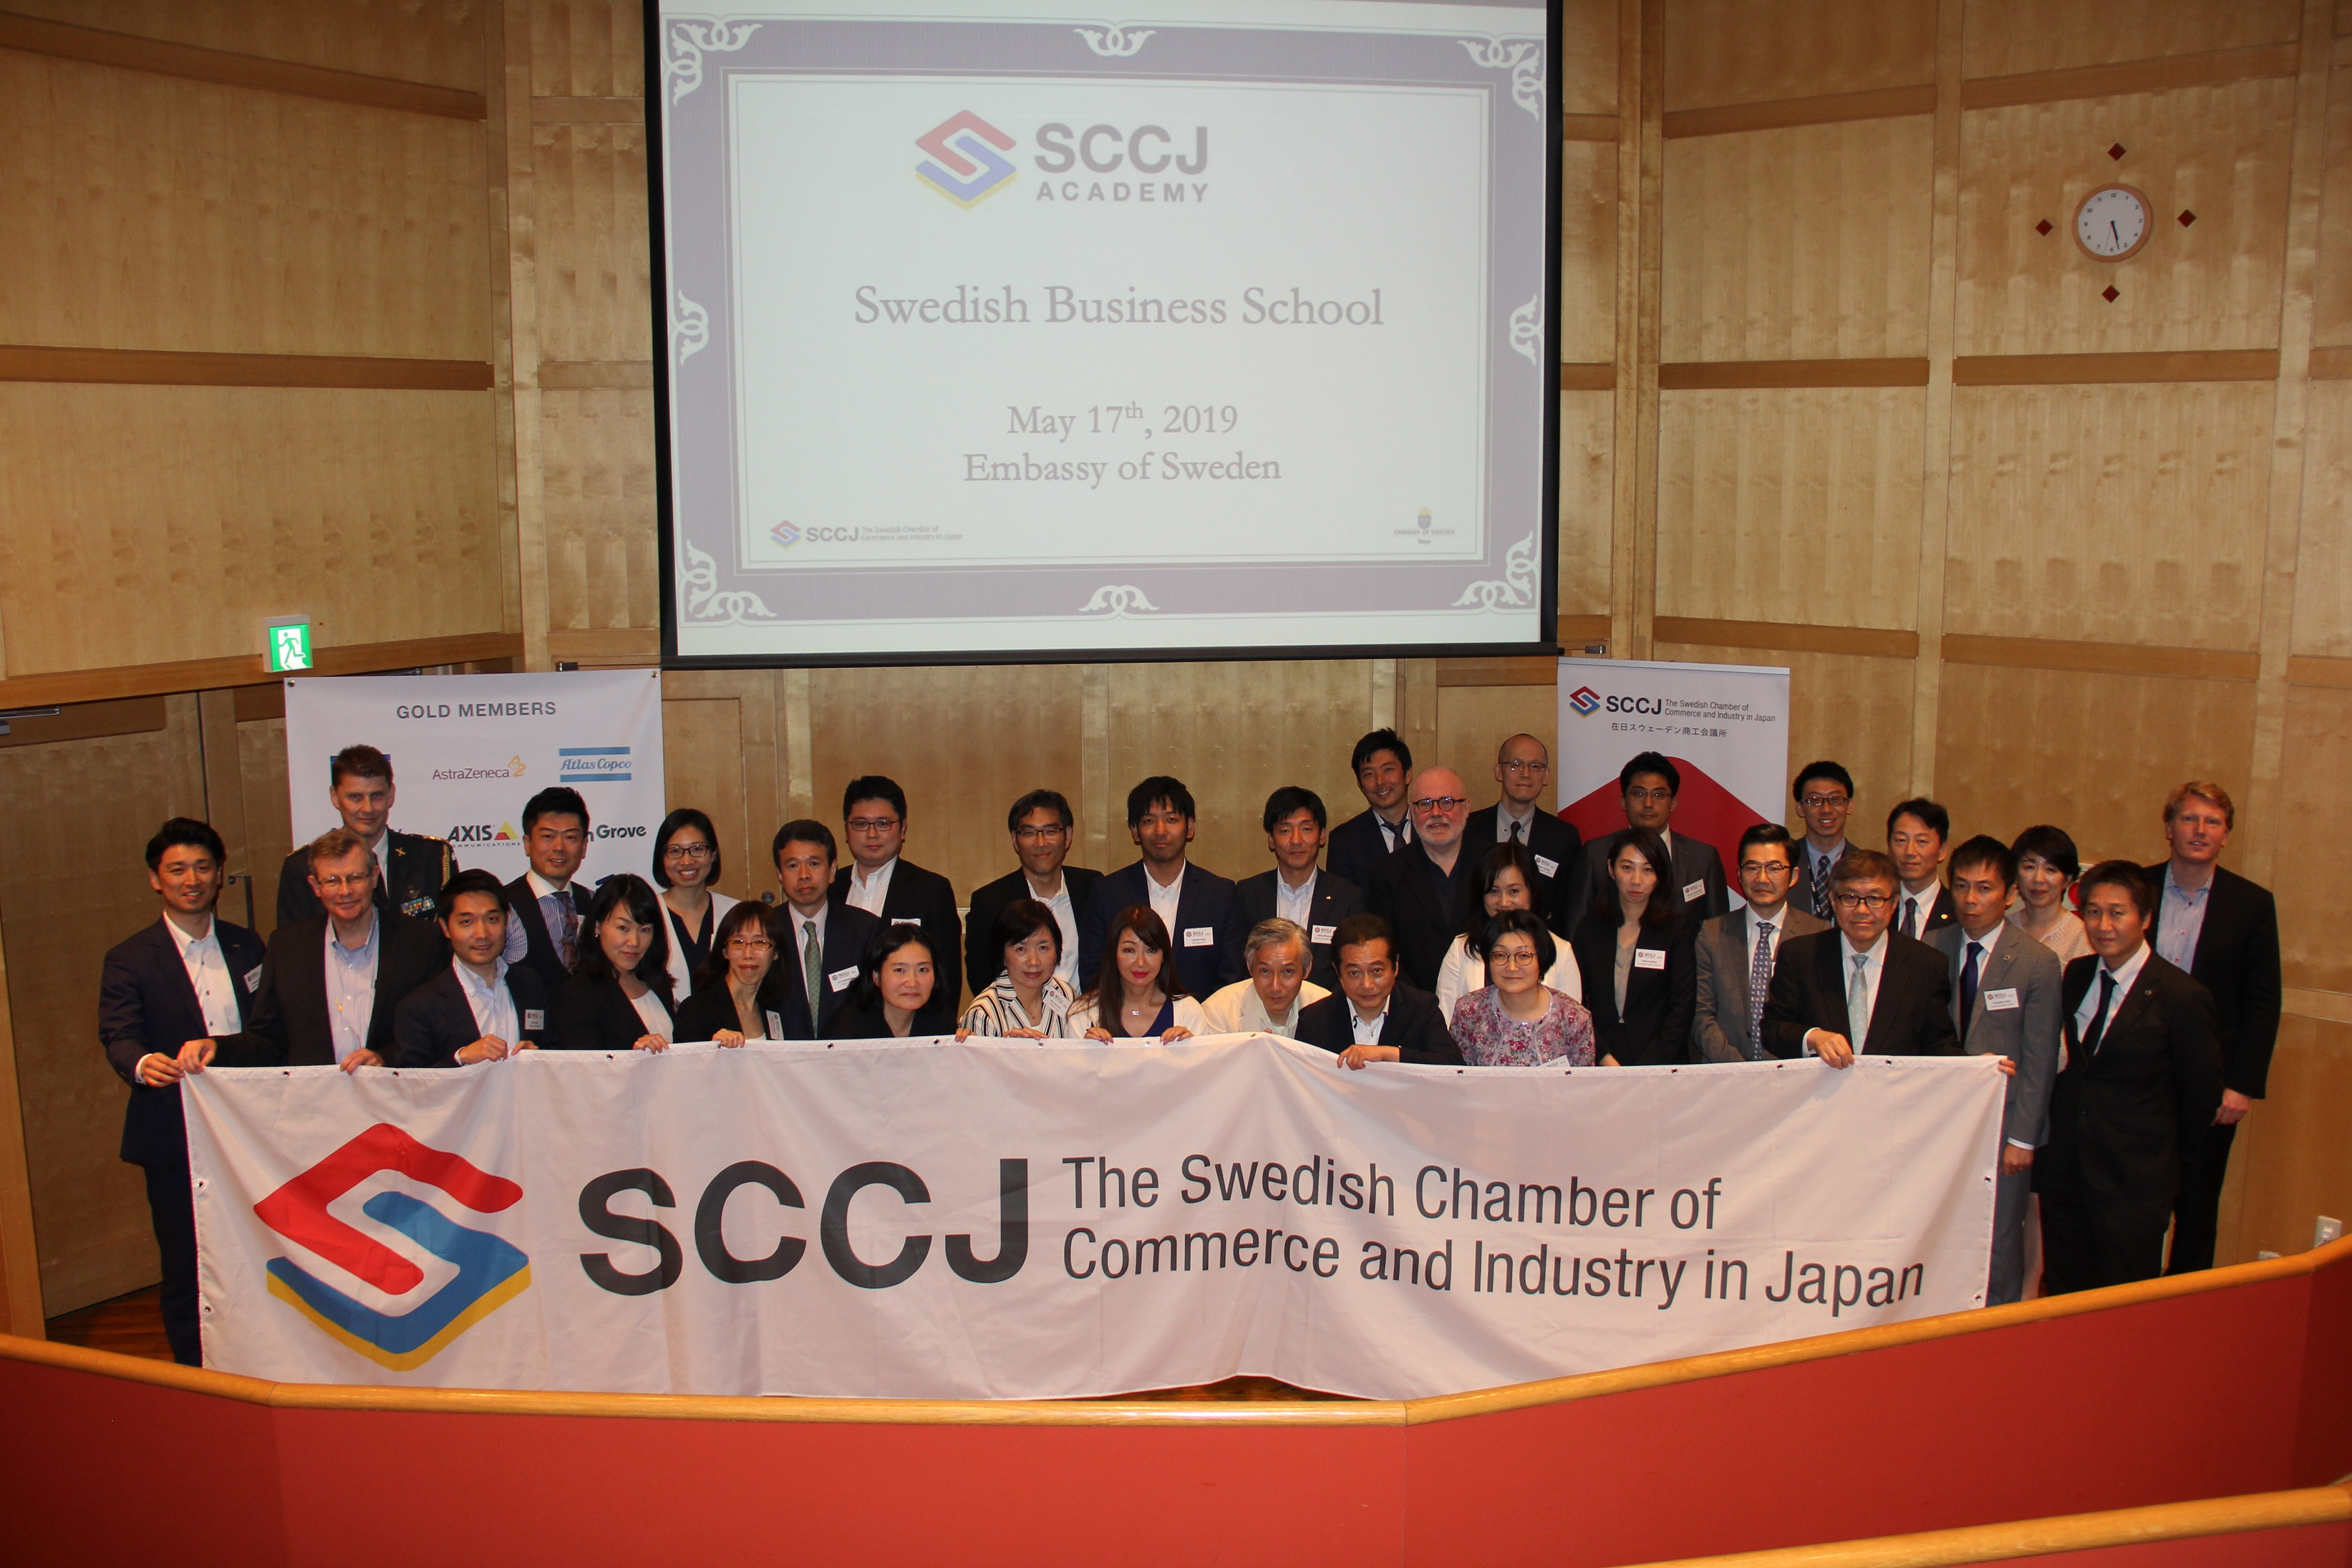 Report: SCCJ Academy - Swedish Business School 2019 Spring